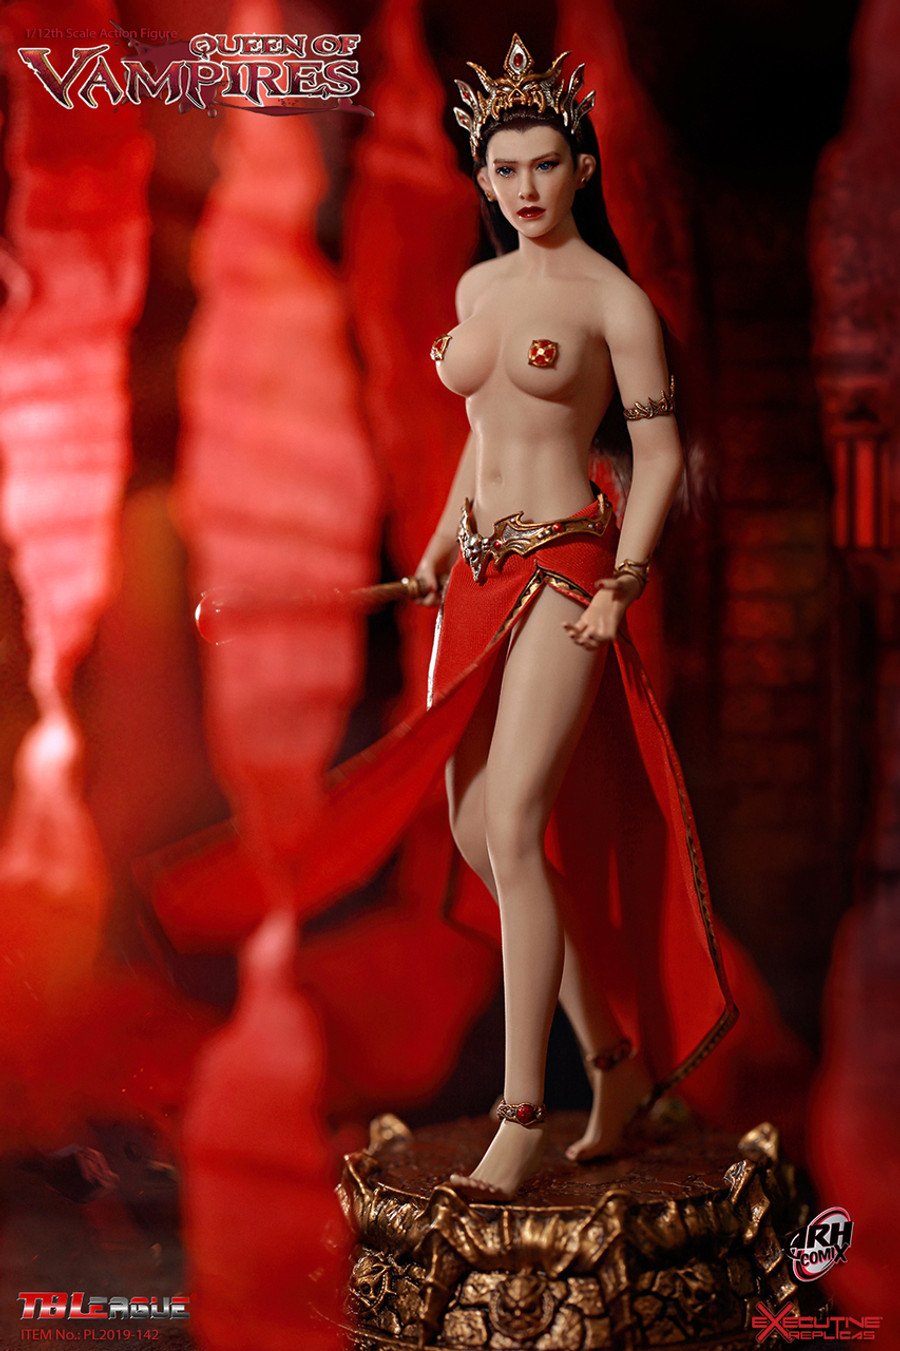 TBLeague - 1/12 Arkhalla Queen of Vampires